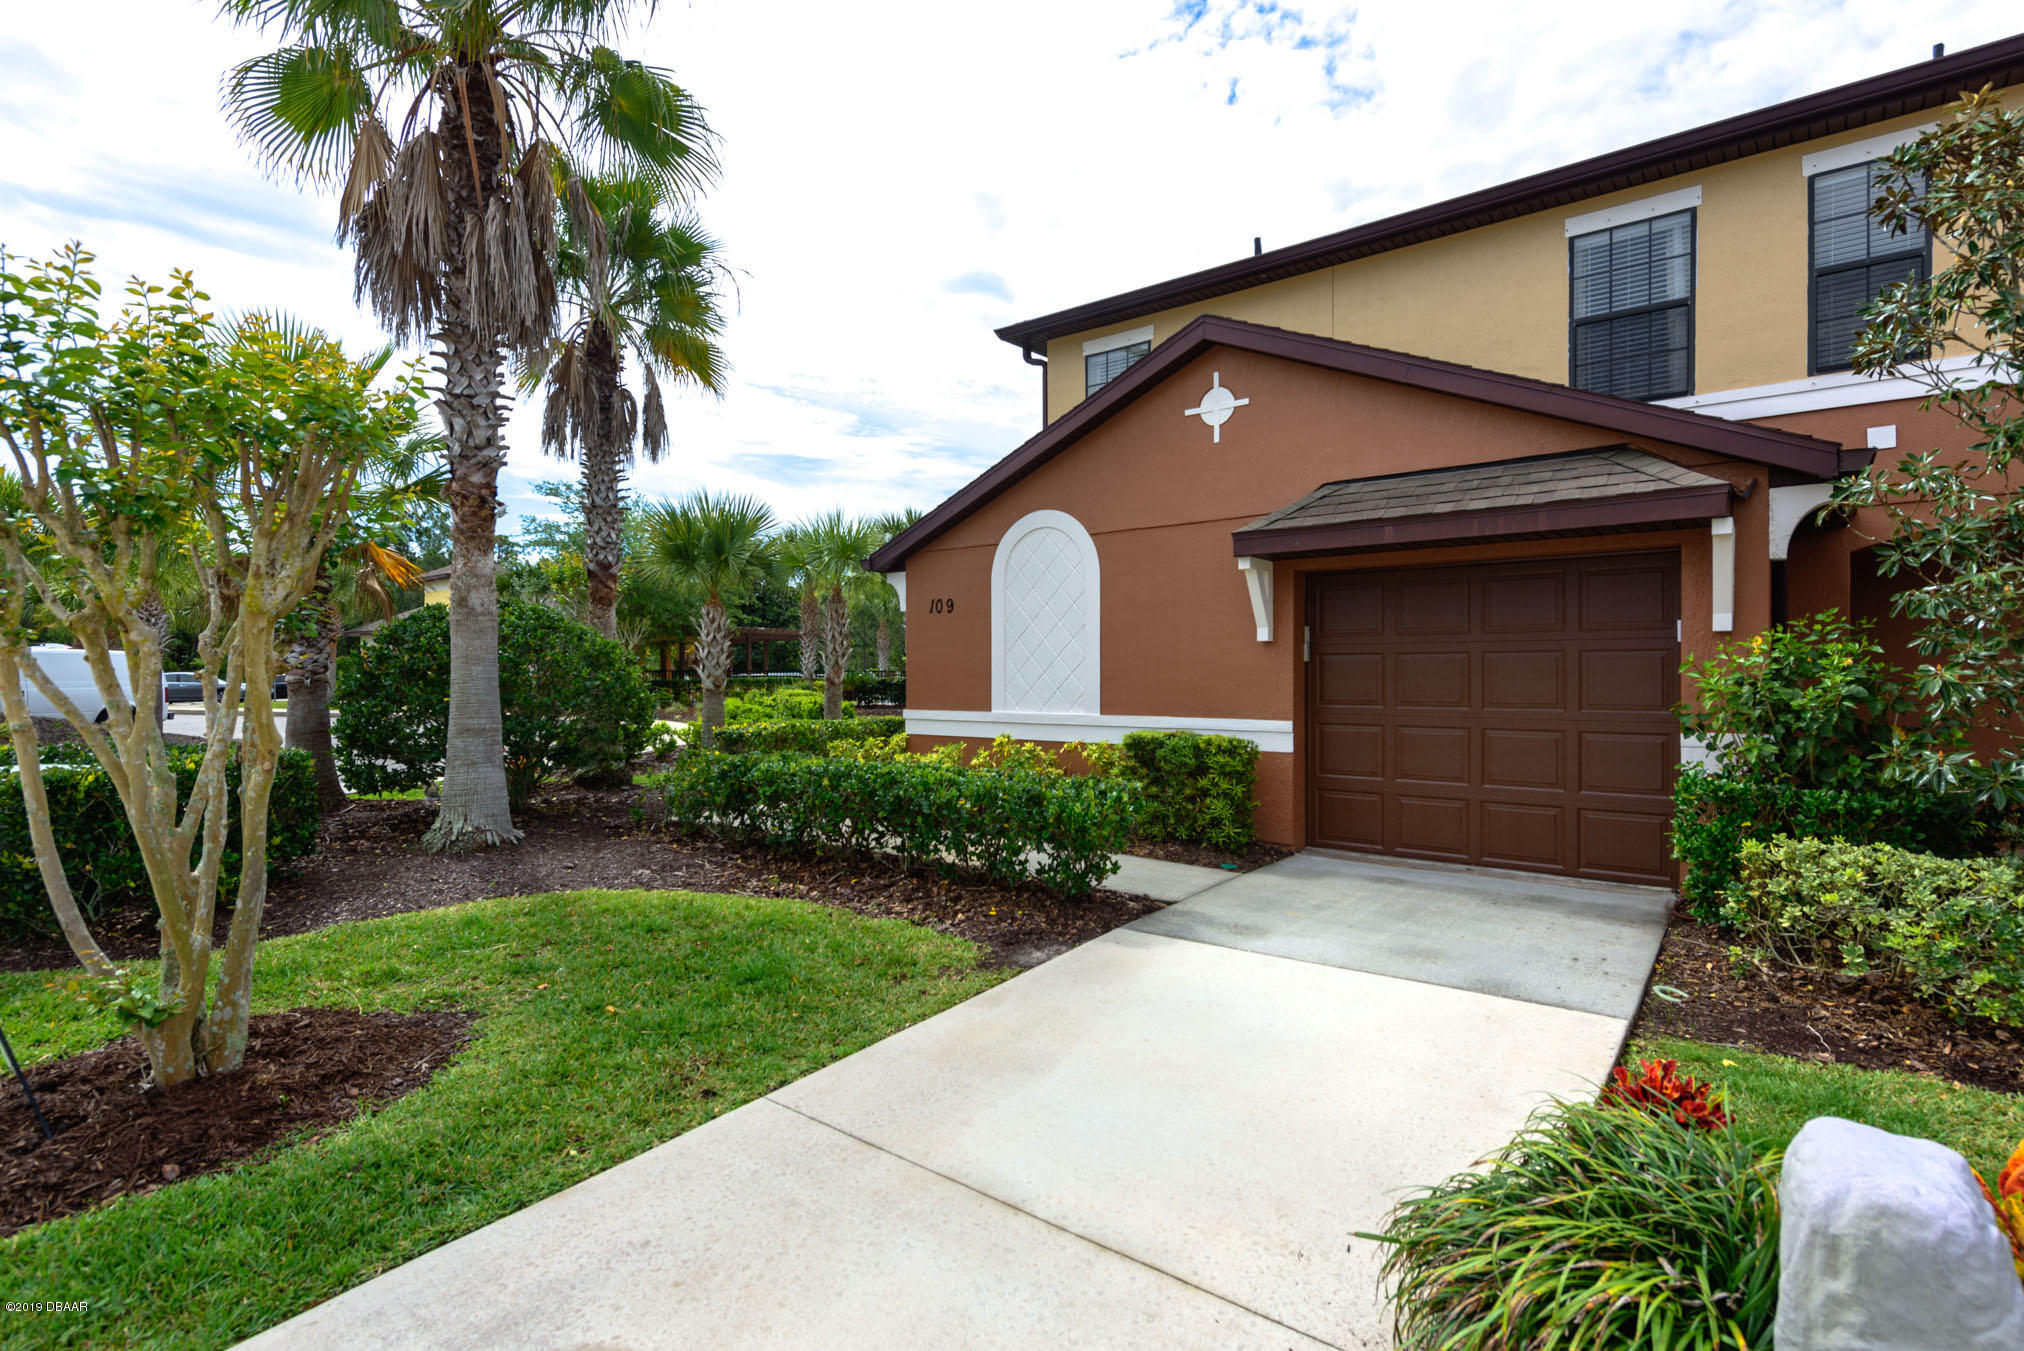 One of Holly Hill 3 Bedroom Homes for Sale at 109 Tarracina Way